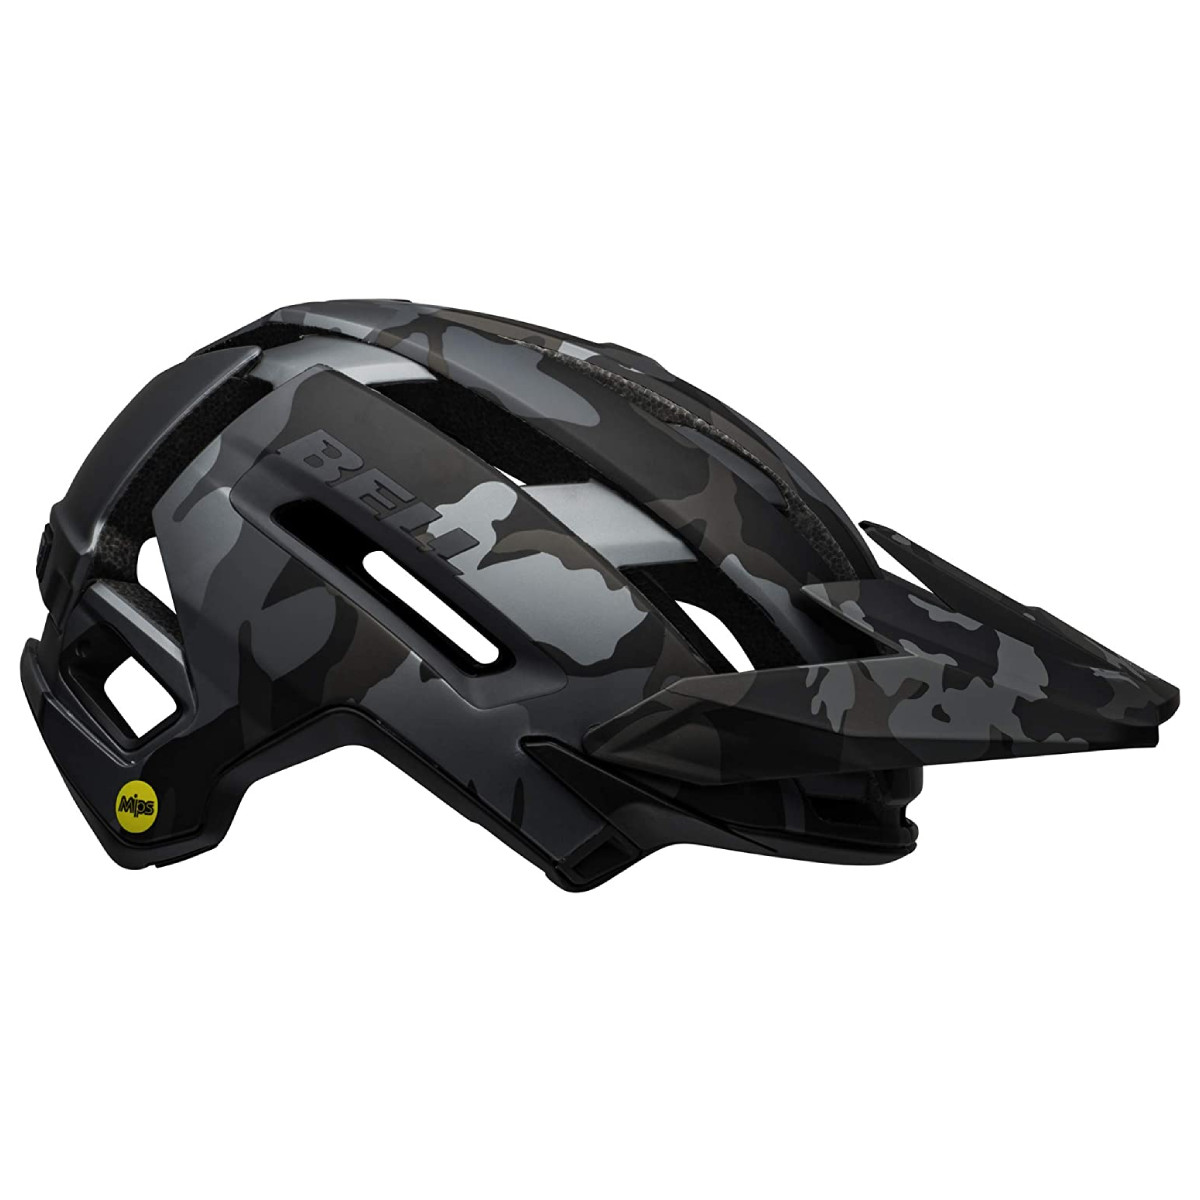 CASQUE BELL SUPER AIR SPHERICAL MIPS CAMO LARGE